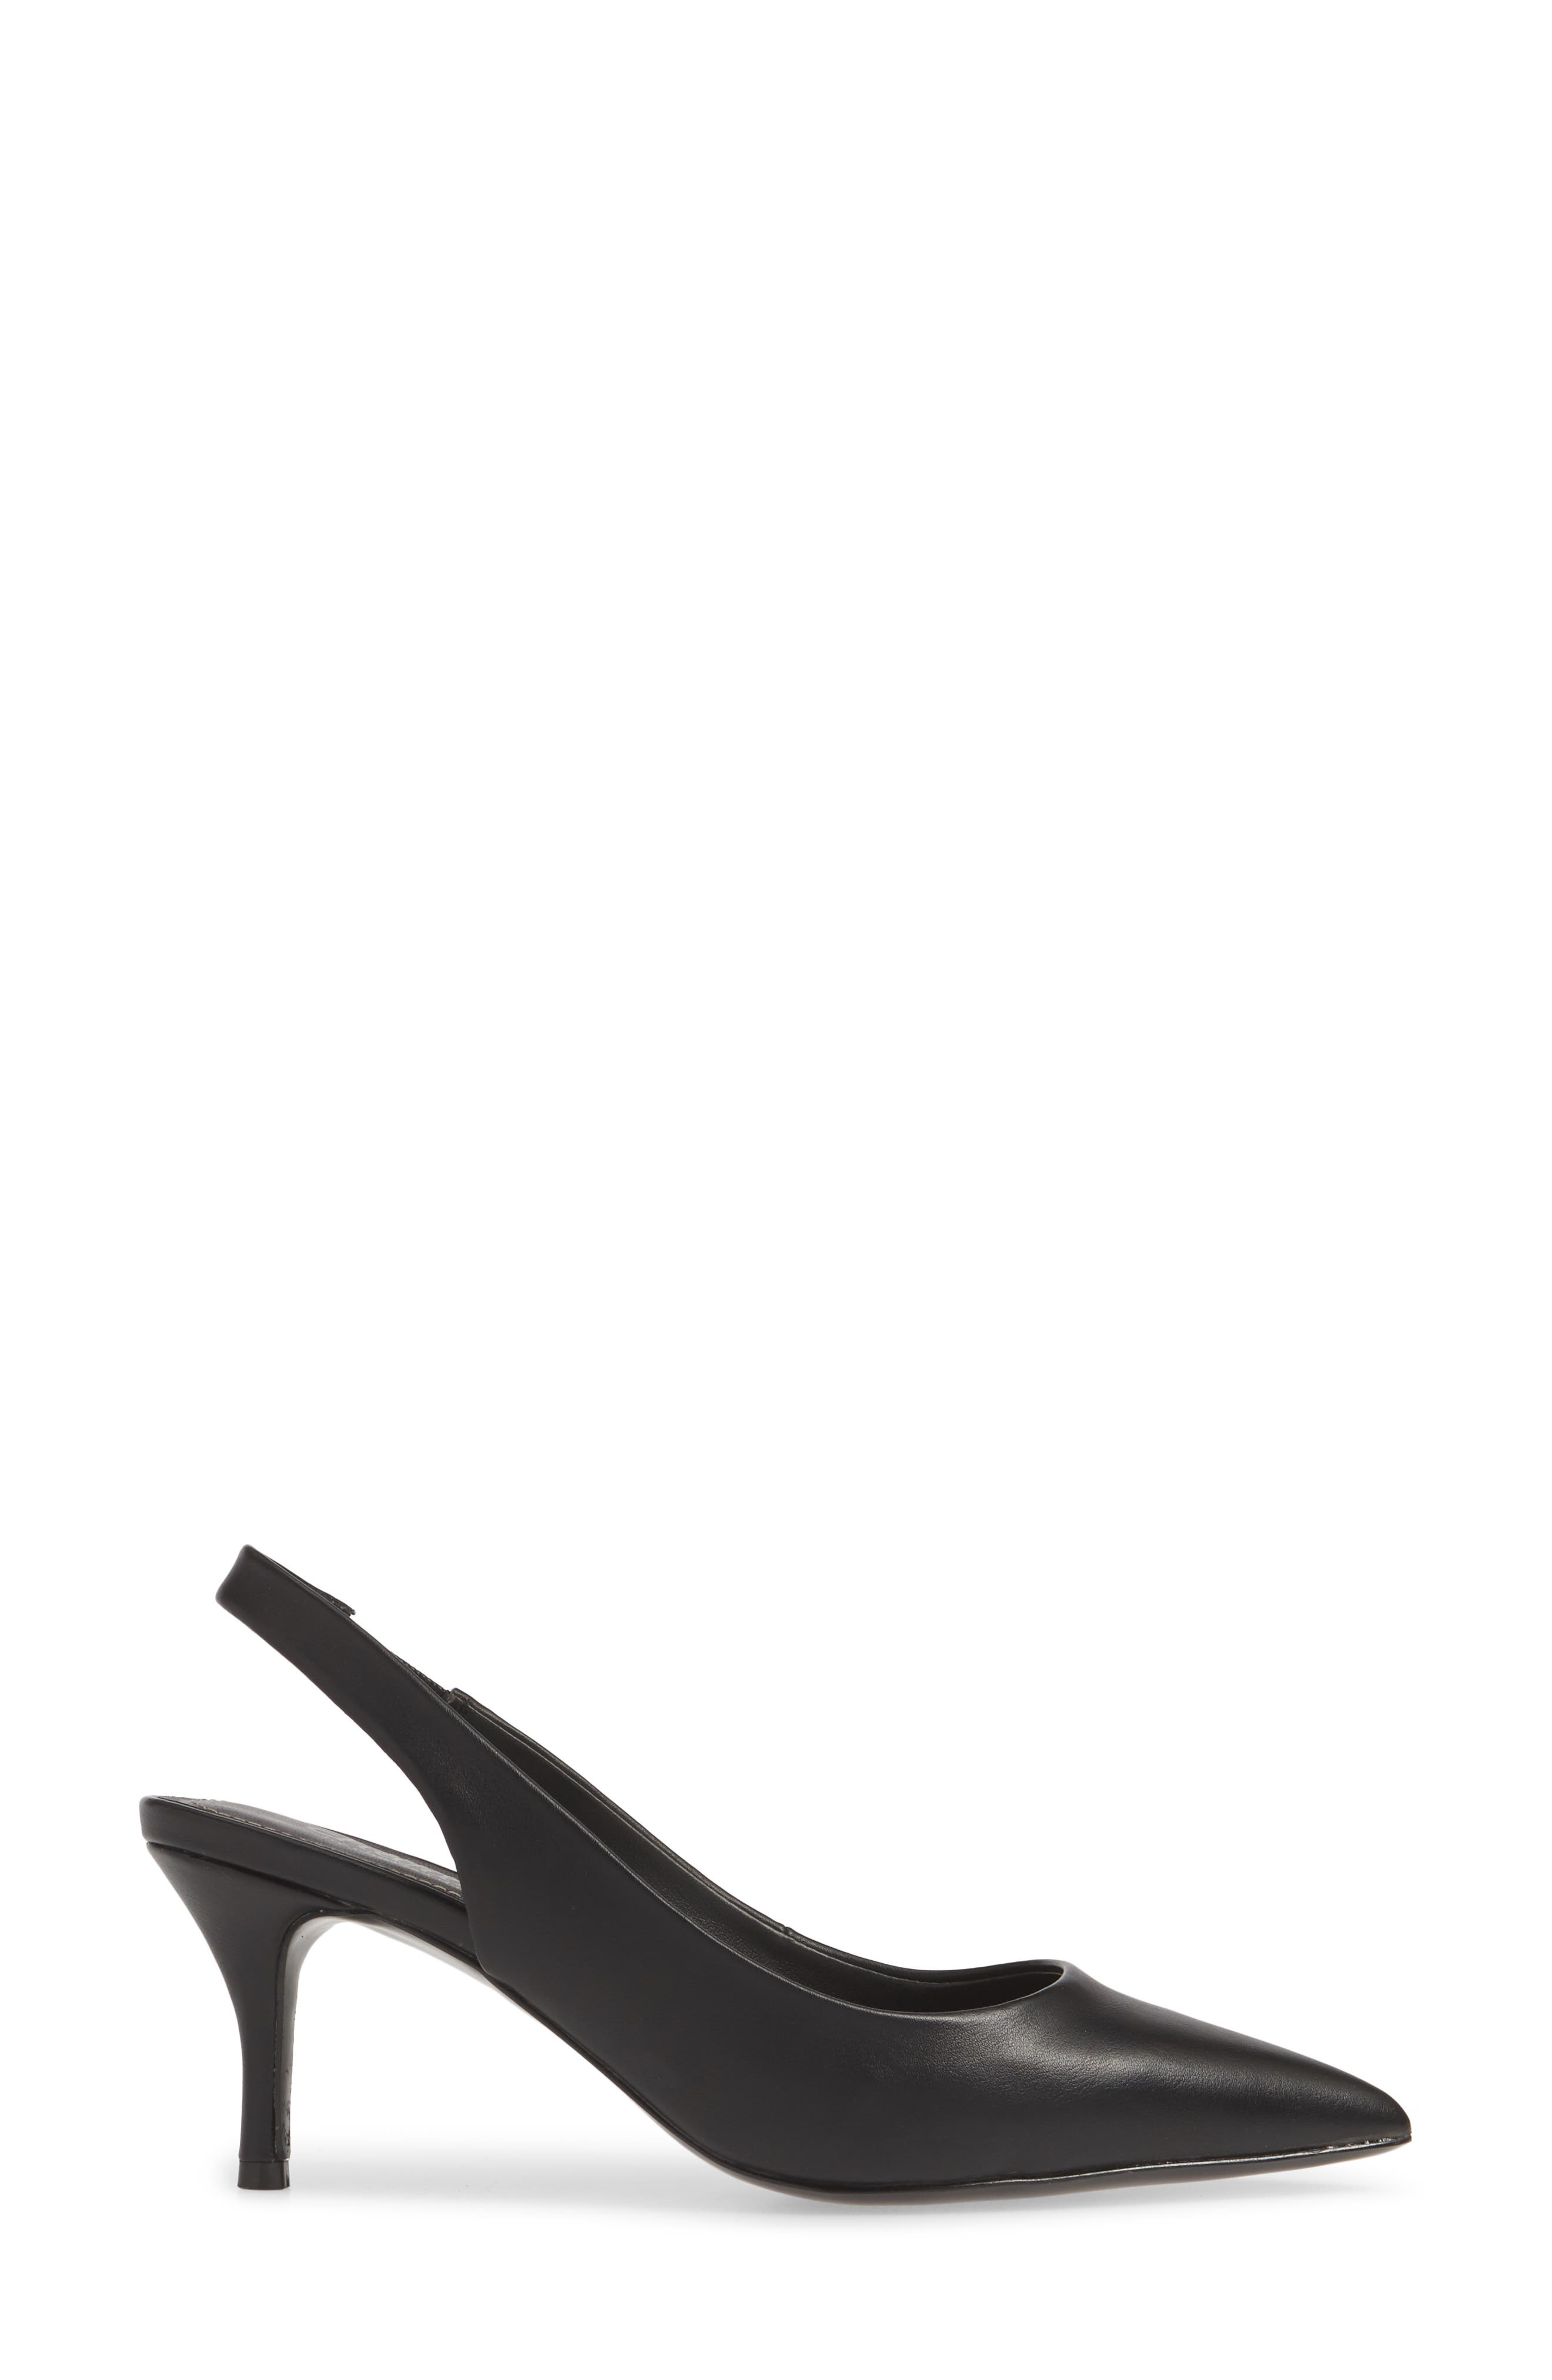 CHARLES BY CHARLES DAVID, Amy Slingback Pump, Alternate thumbnail 3, color, BLACK FAUX LEATHER